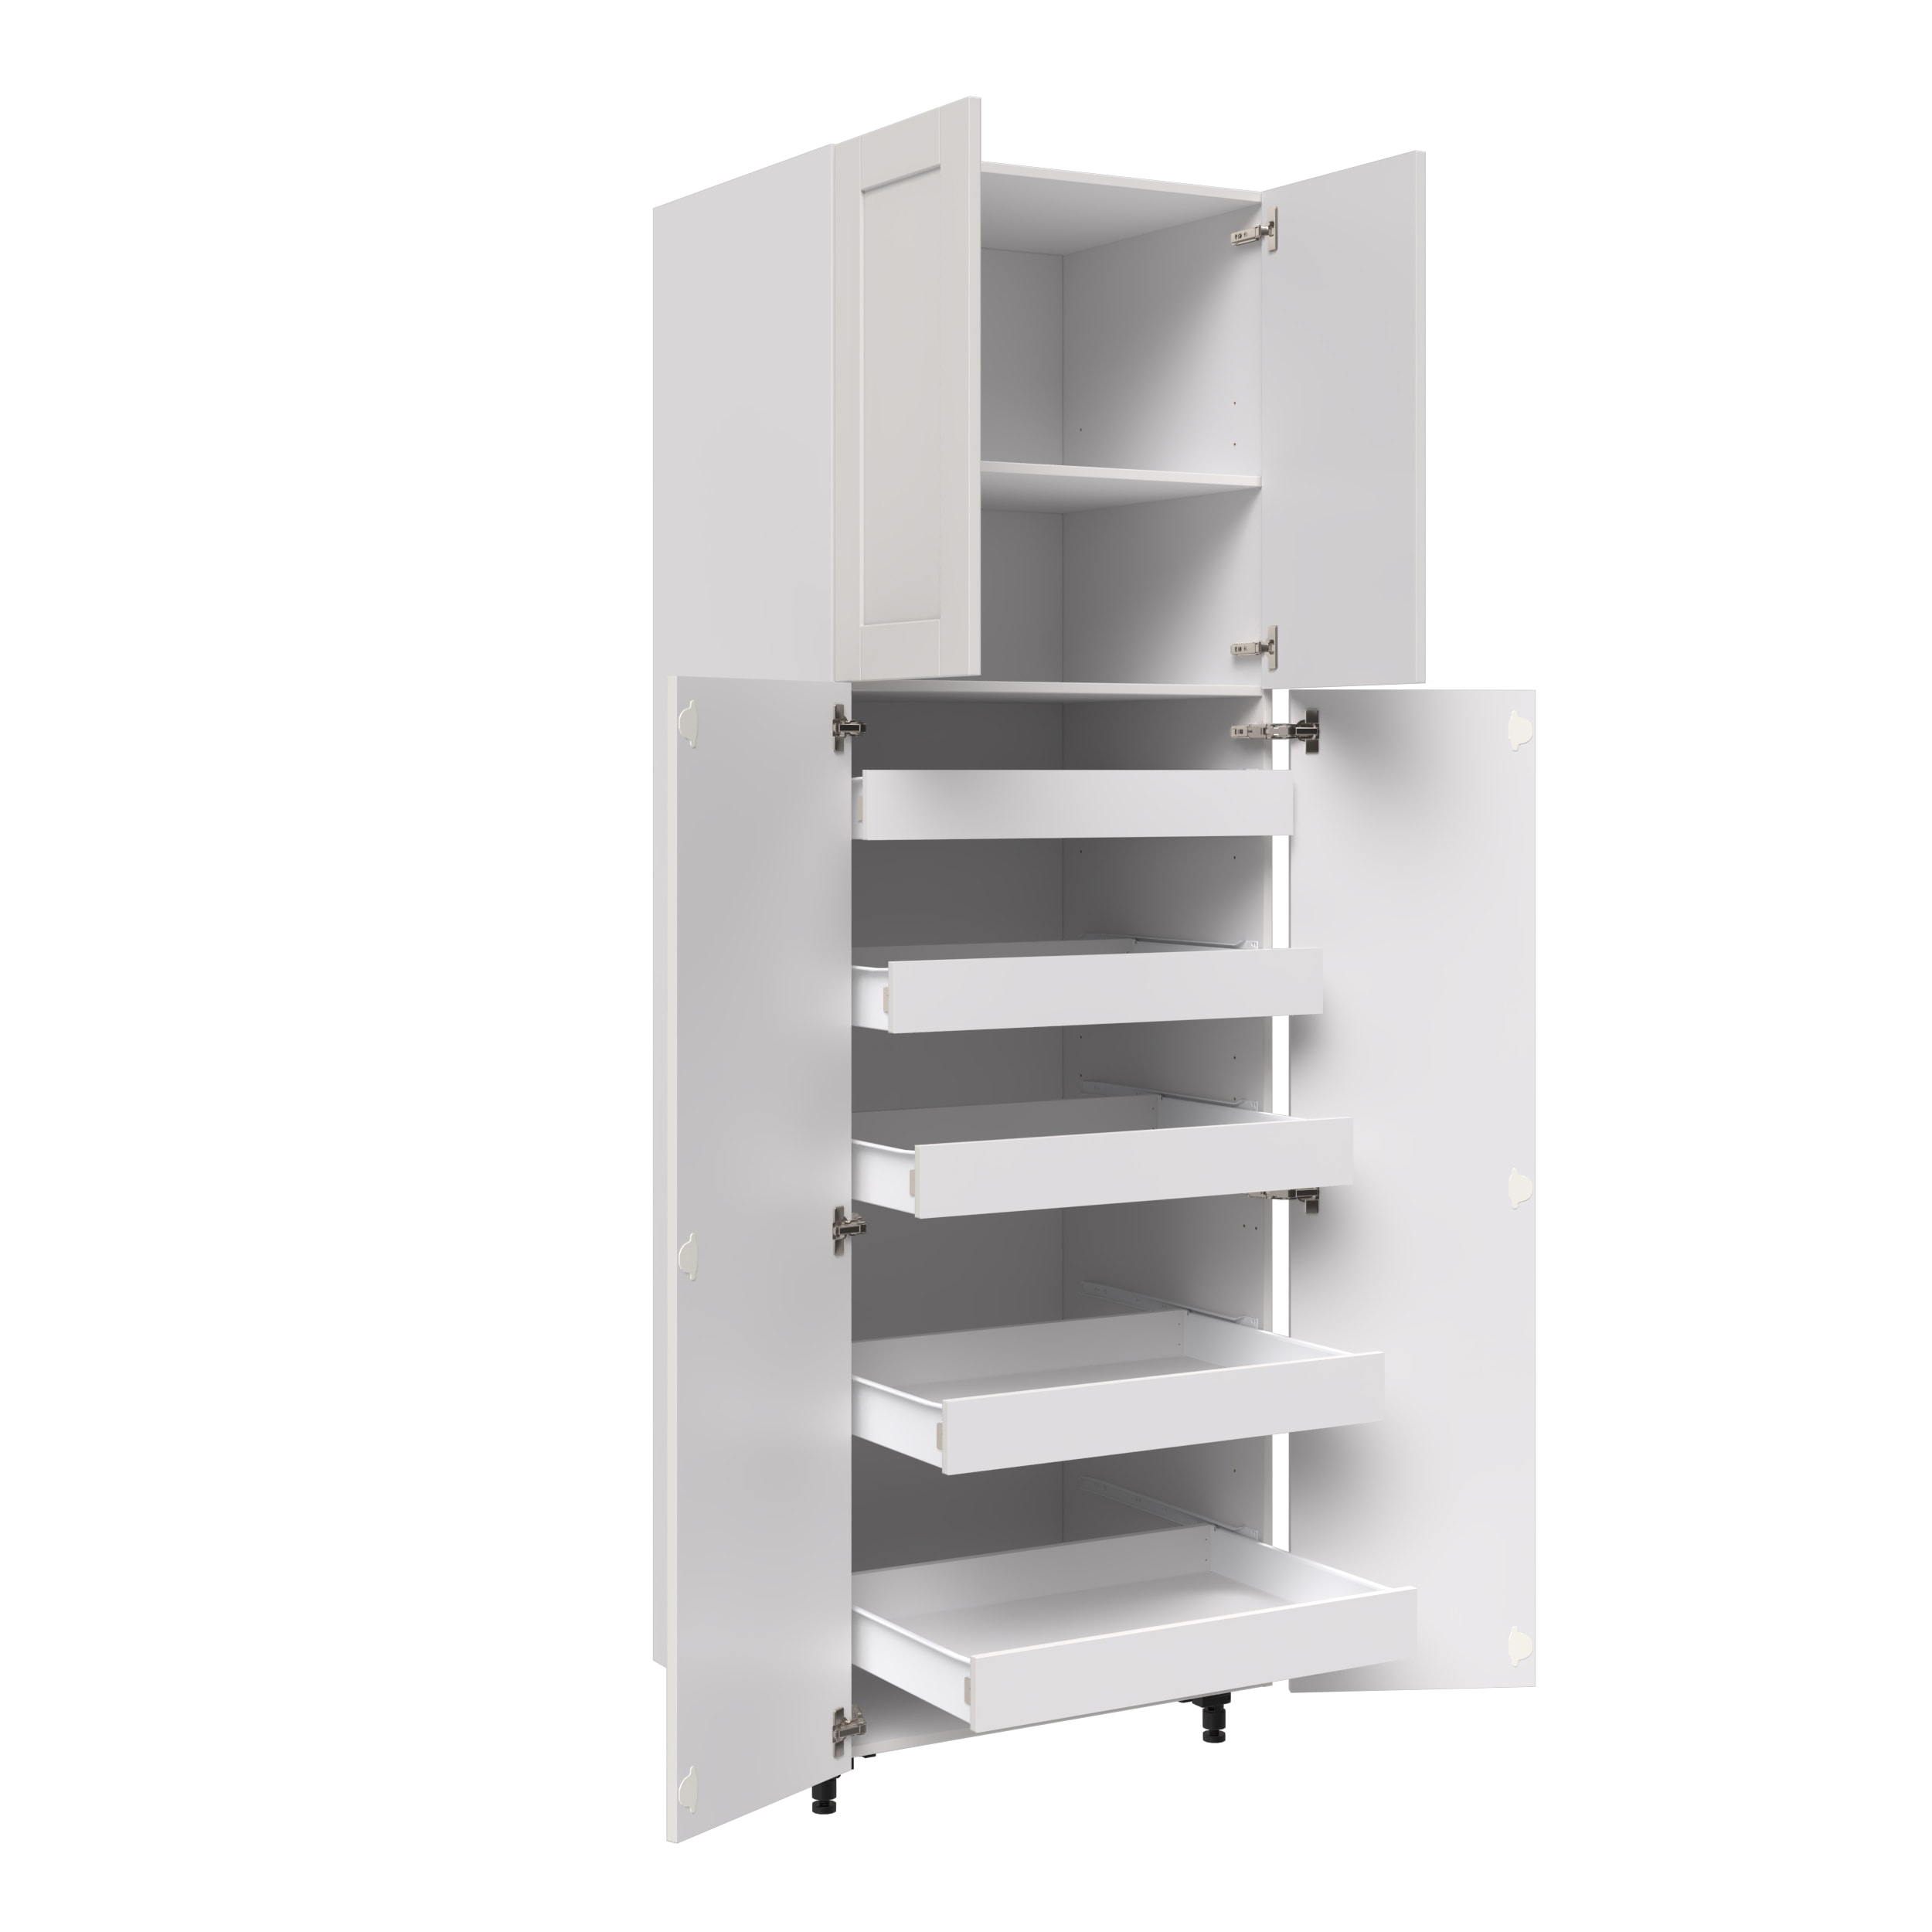 30 Tall Cabinet With 2 Bottom Tall Doors And 5 Interior Drawers